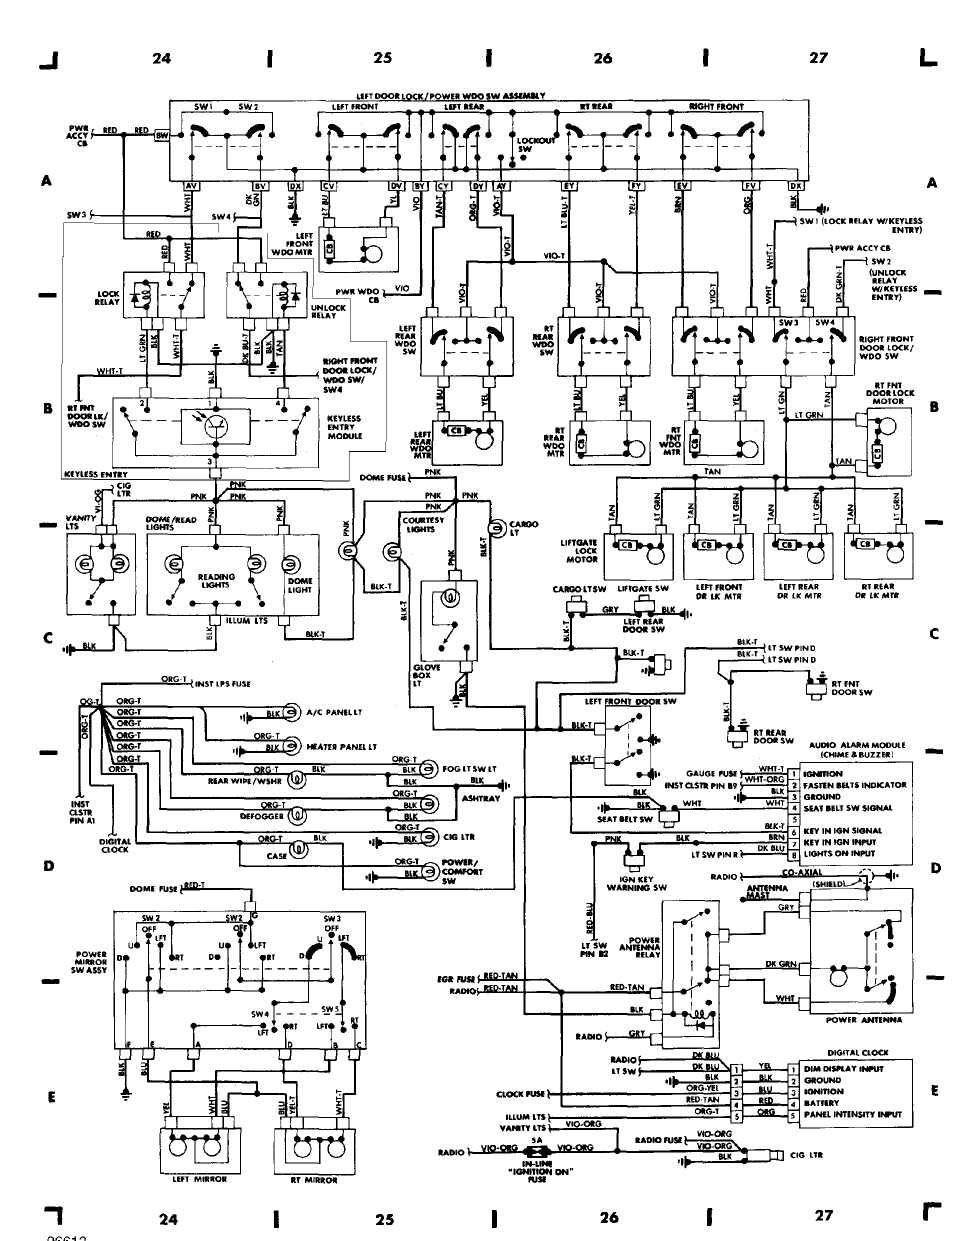 🏆 [DIAGRAM in Pictures Database] Charging System Wiring Diagram For 1998  Jeep Wrangler Just Download or Read Jeep Wrangler -  GENEVIEVE.DECHANOZ.FORUM.ONYXUM.COMComplete Diagram Picture Database - Onyxum.com